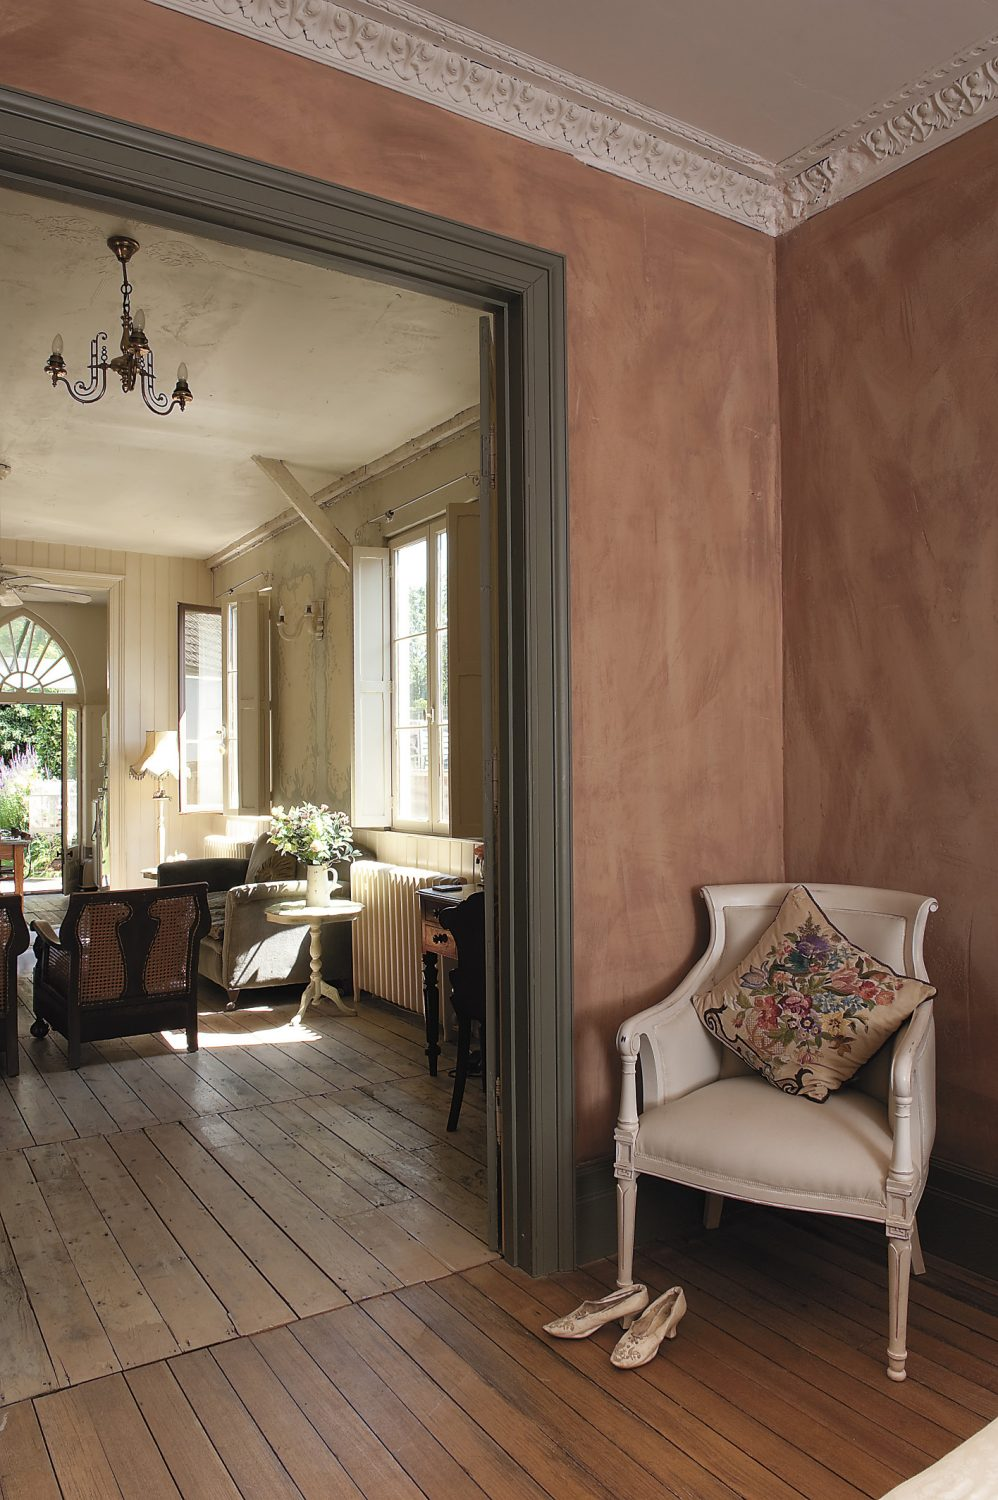 the airy master bedroom leads straight into the living room through an impressive set of antique French painted doors